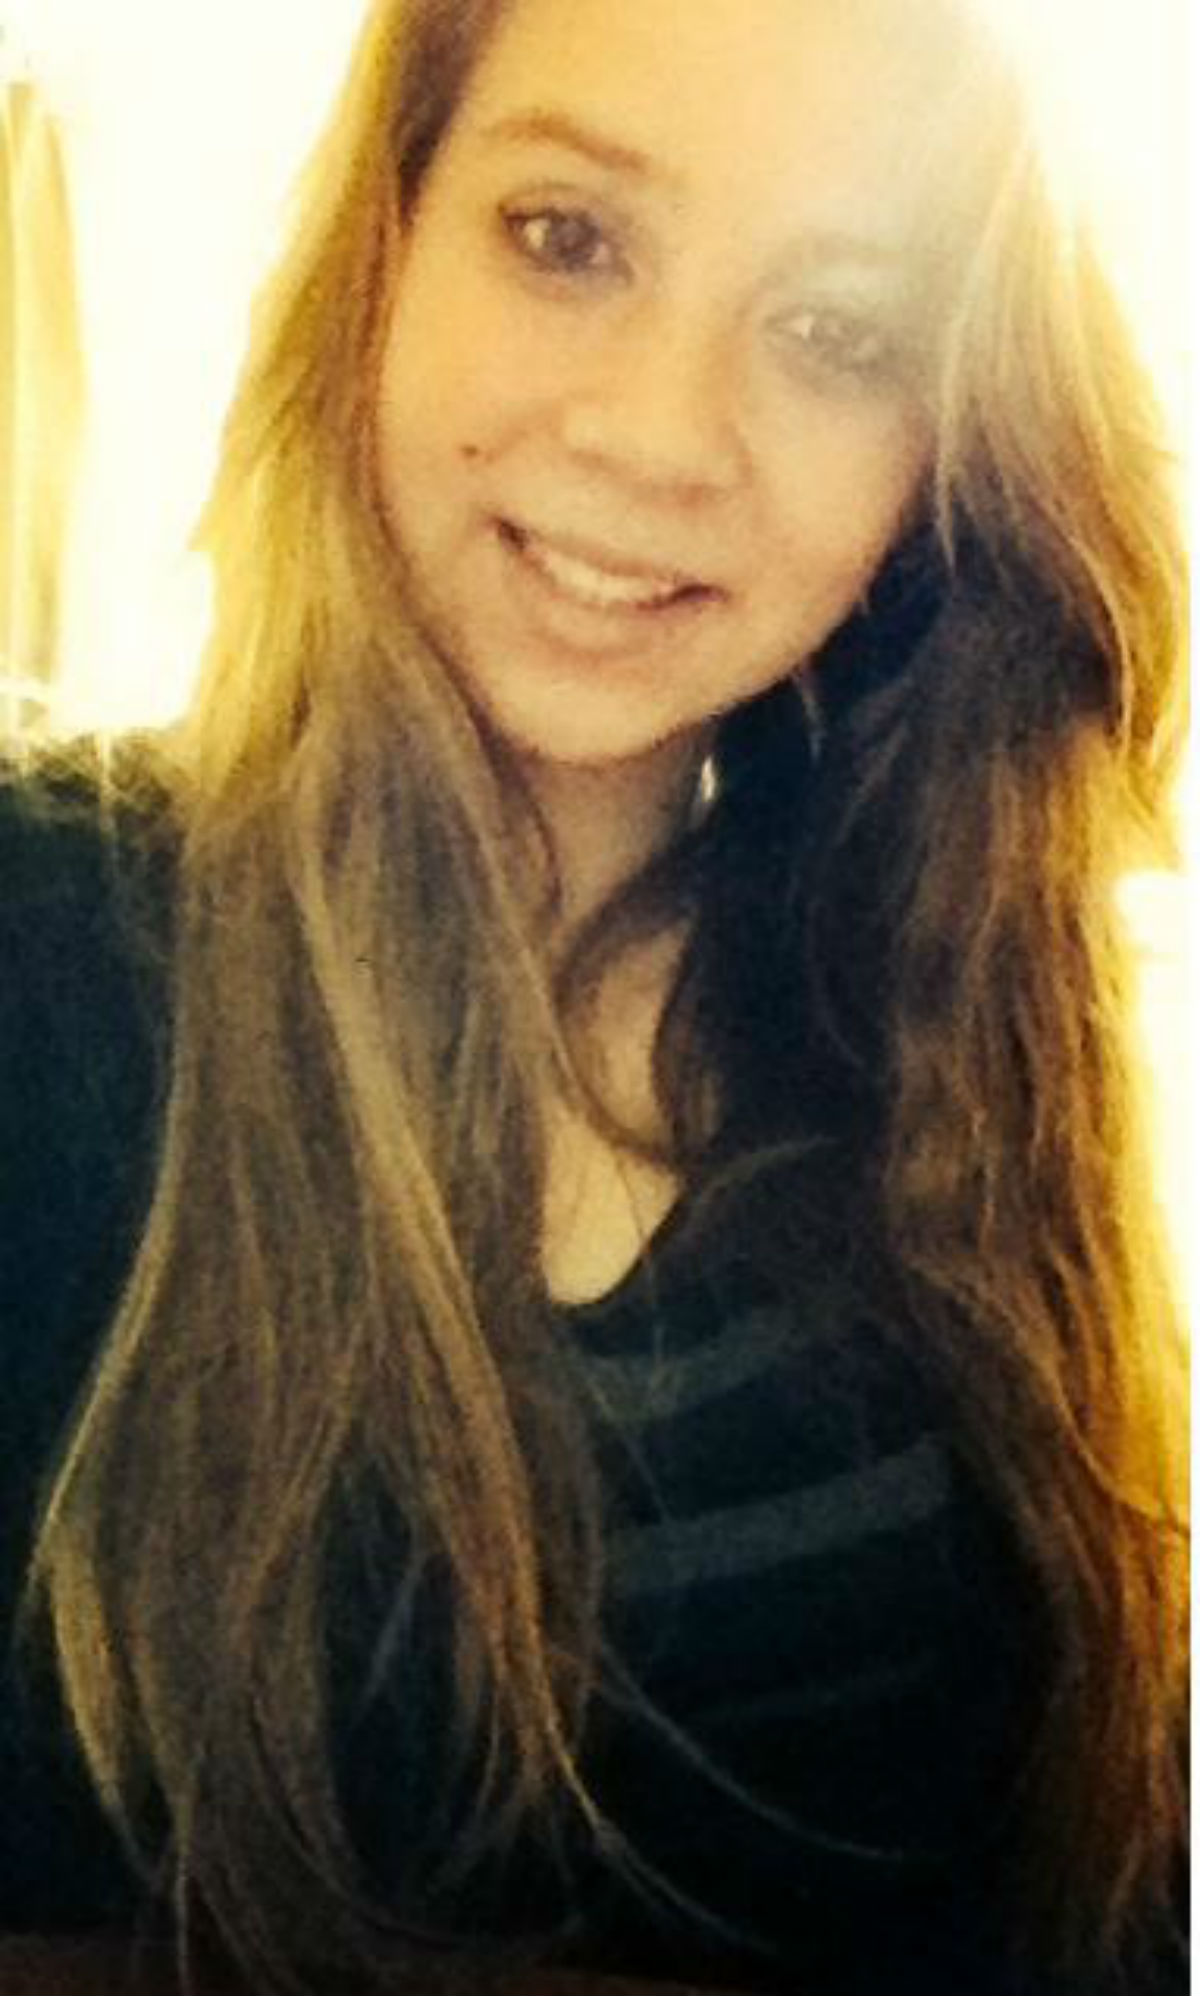 Ana Maria Cernea, 14, of Edmonton, went missing on Tuesday, April 22 but has now been found